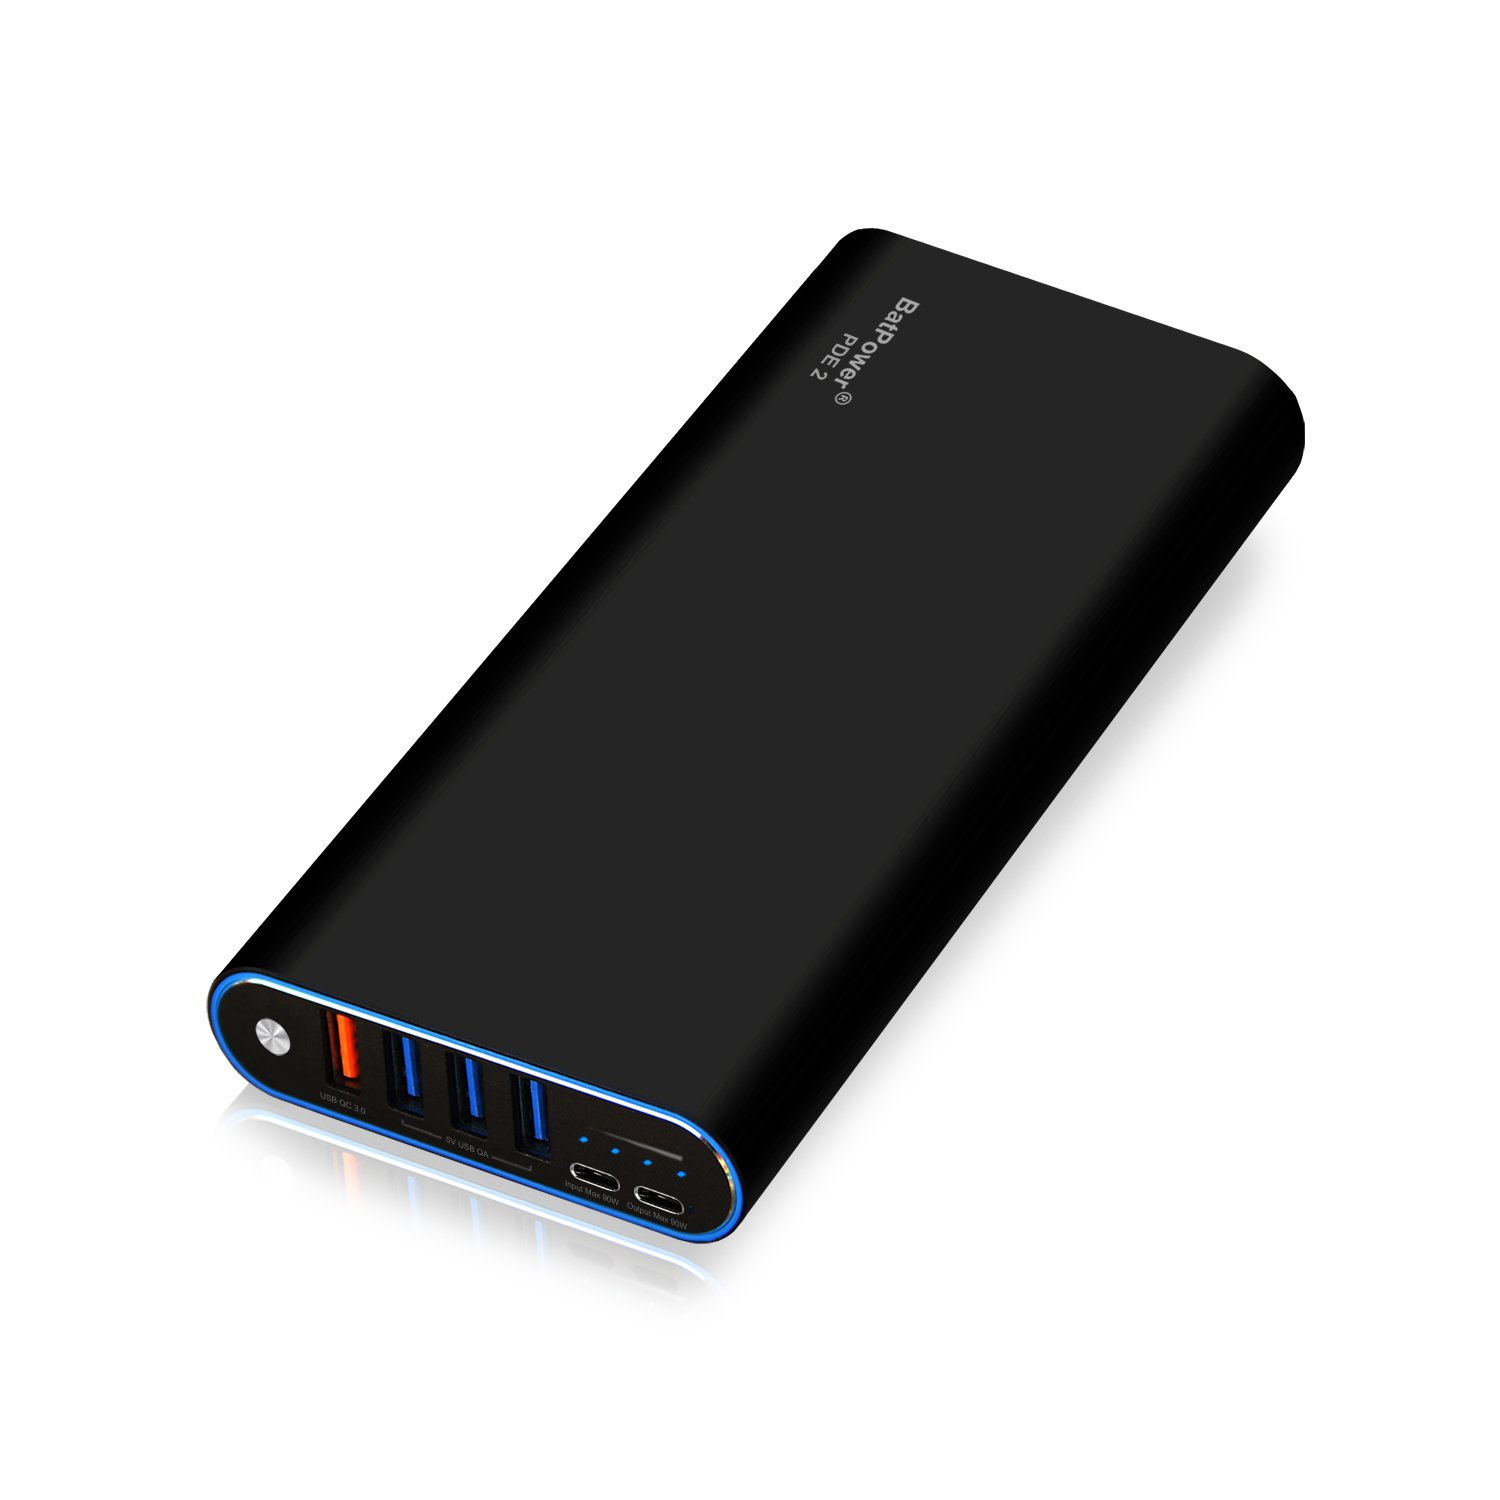 BatPower PDE 2 P40B USB-C Power Bank Portable Charger External Battery for Apple Microsoft HP Lenovo Dell Razer Asus LG Acer MSI Samsung PD USB C laptop notebook tablet smartphone -148Wh by BatPower (Image #2)